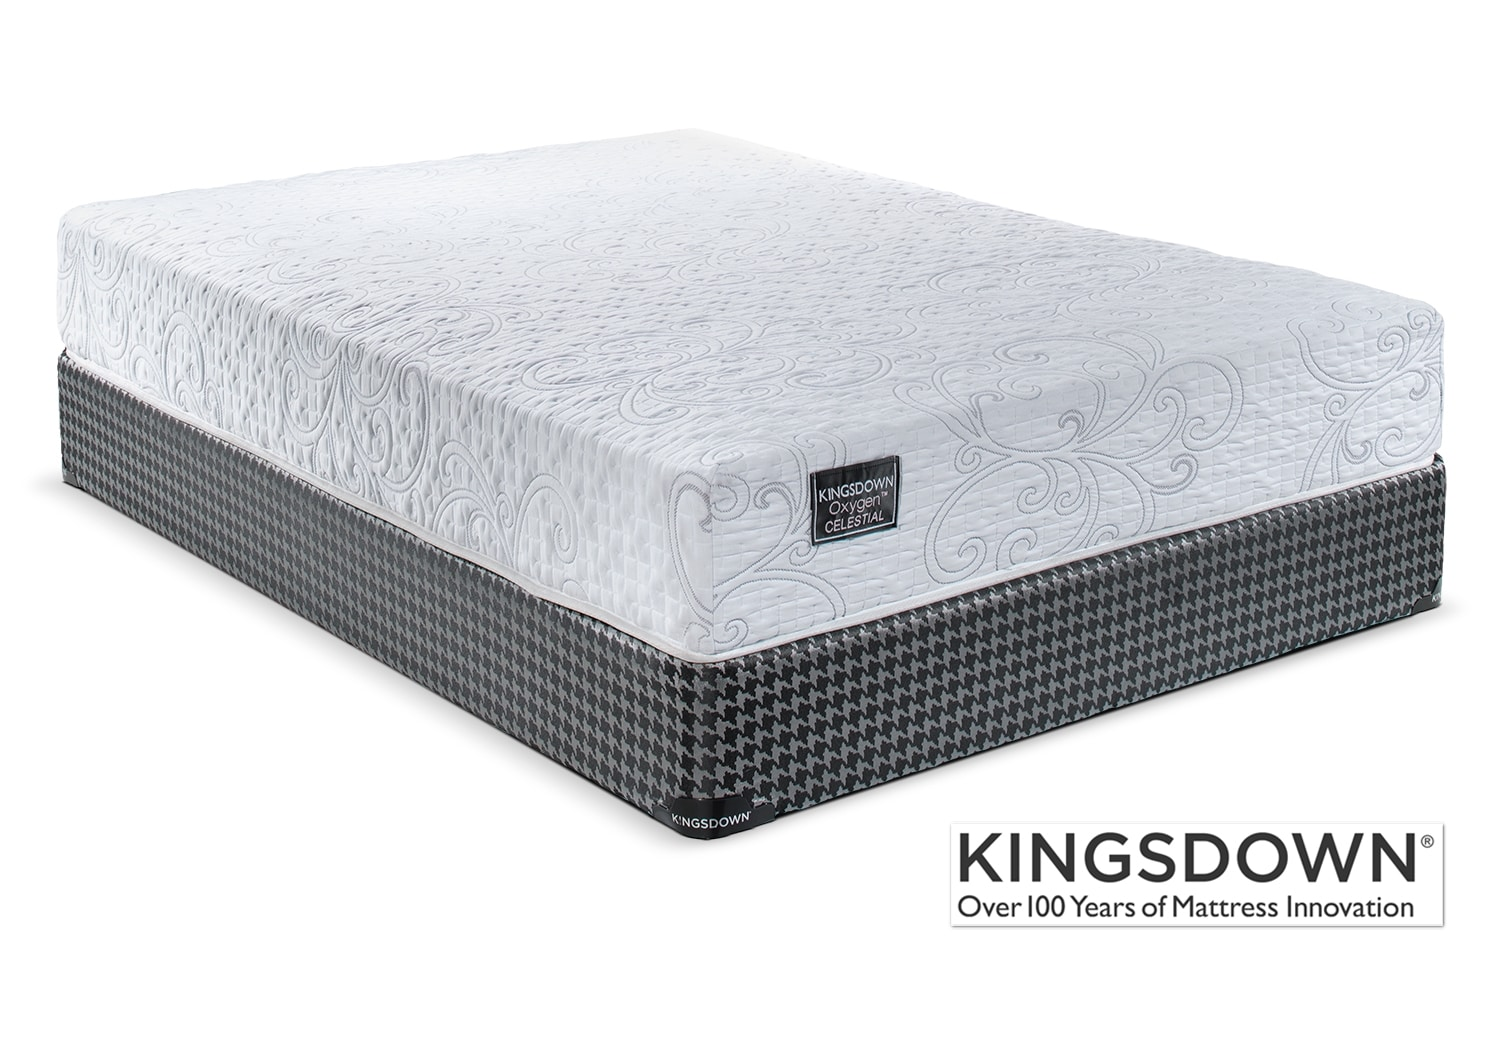 Kingsdown Celestial Queen Mattress/Boxspring Set